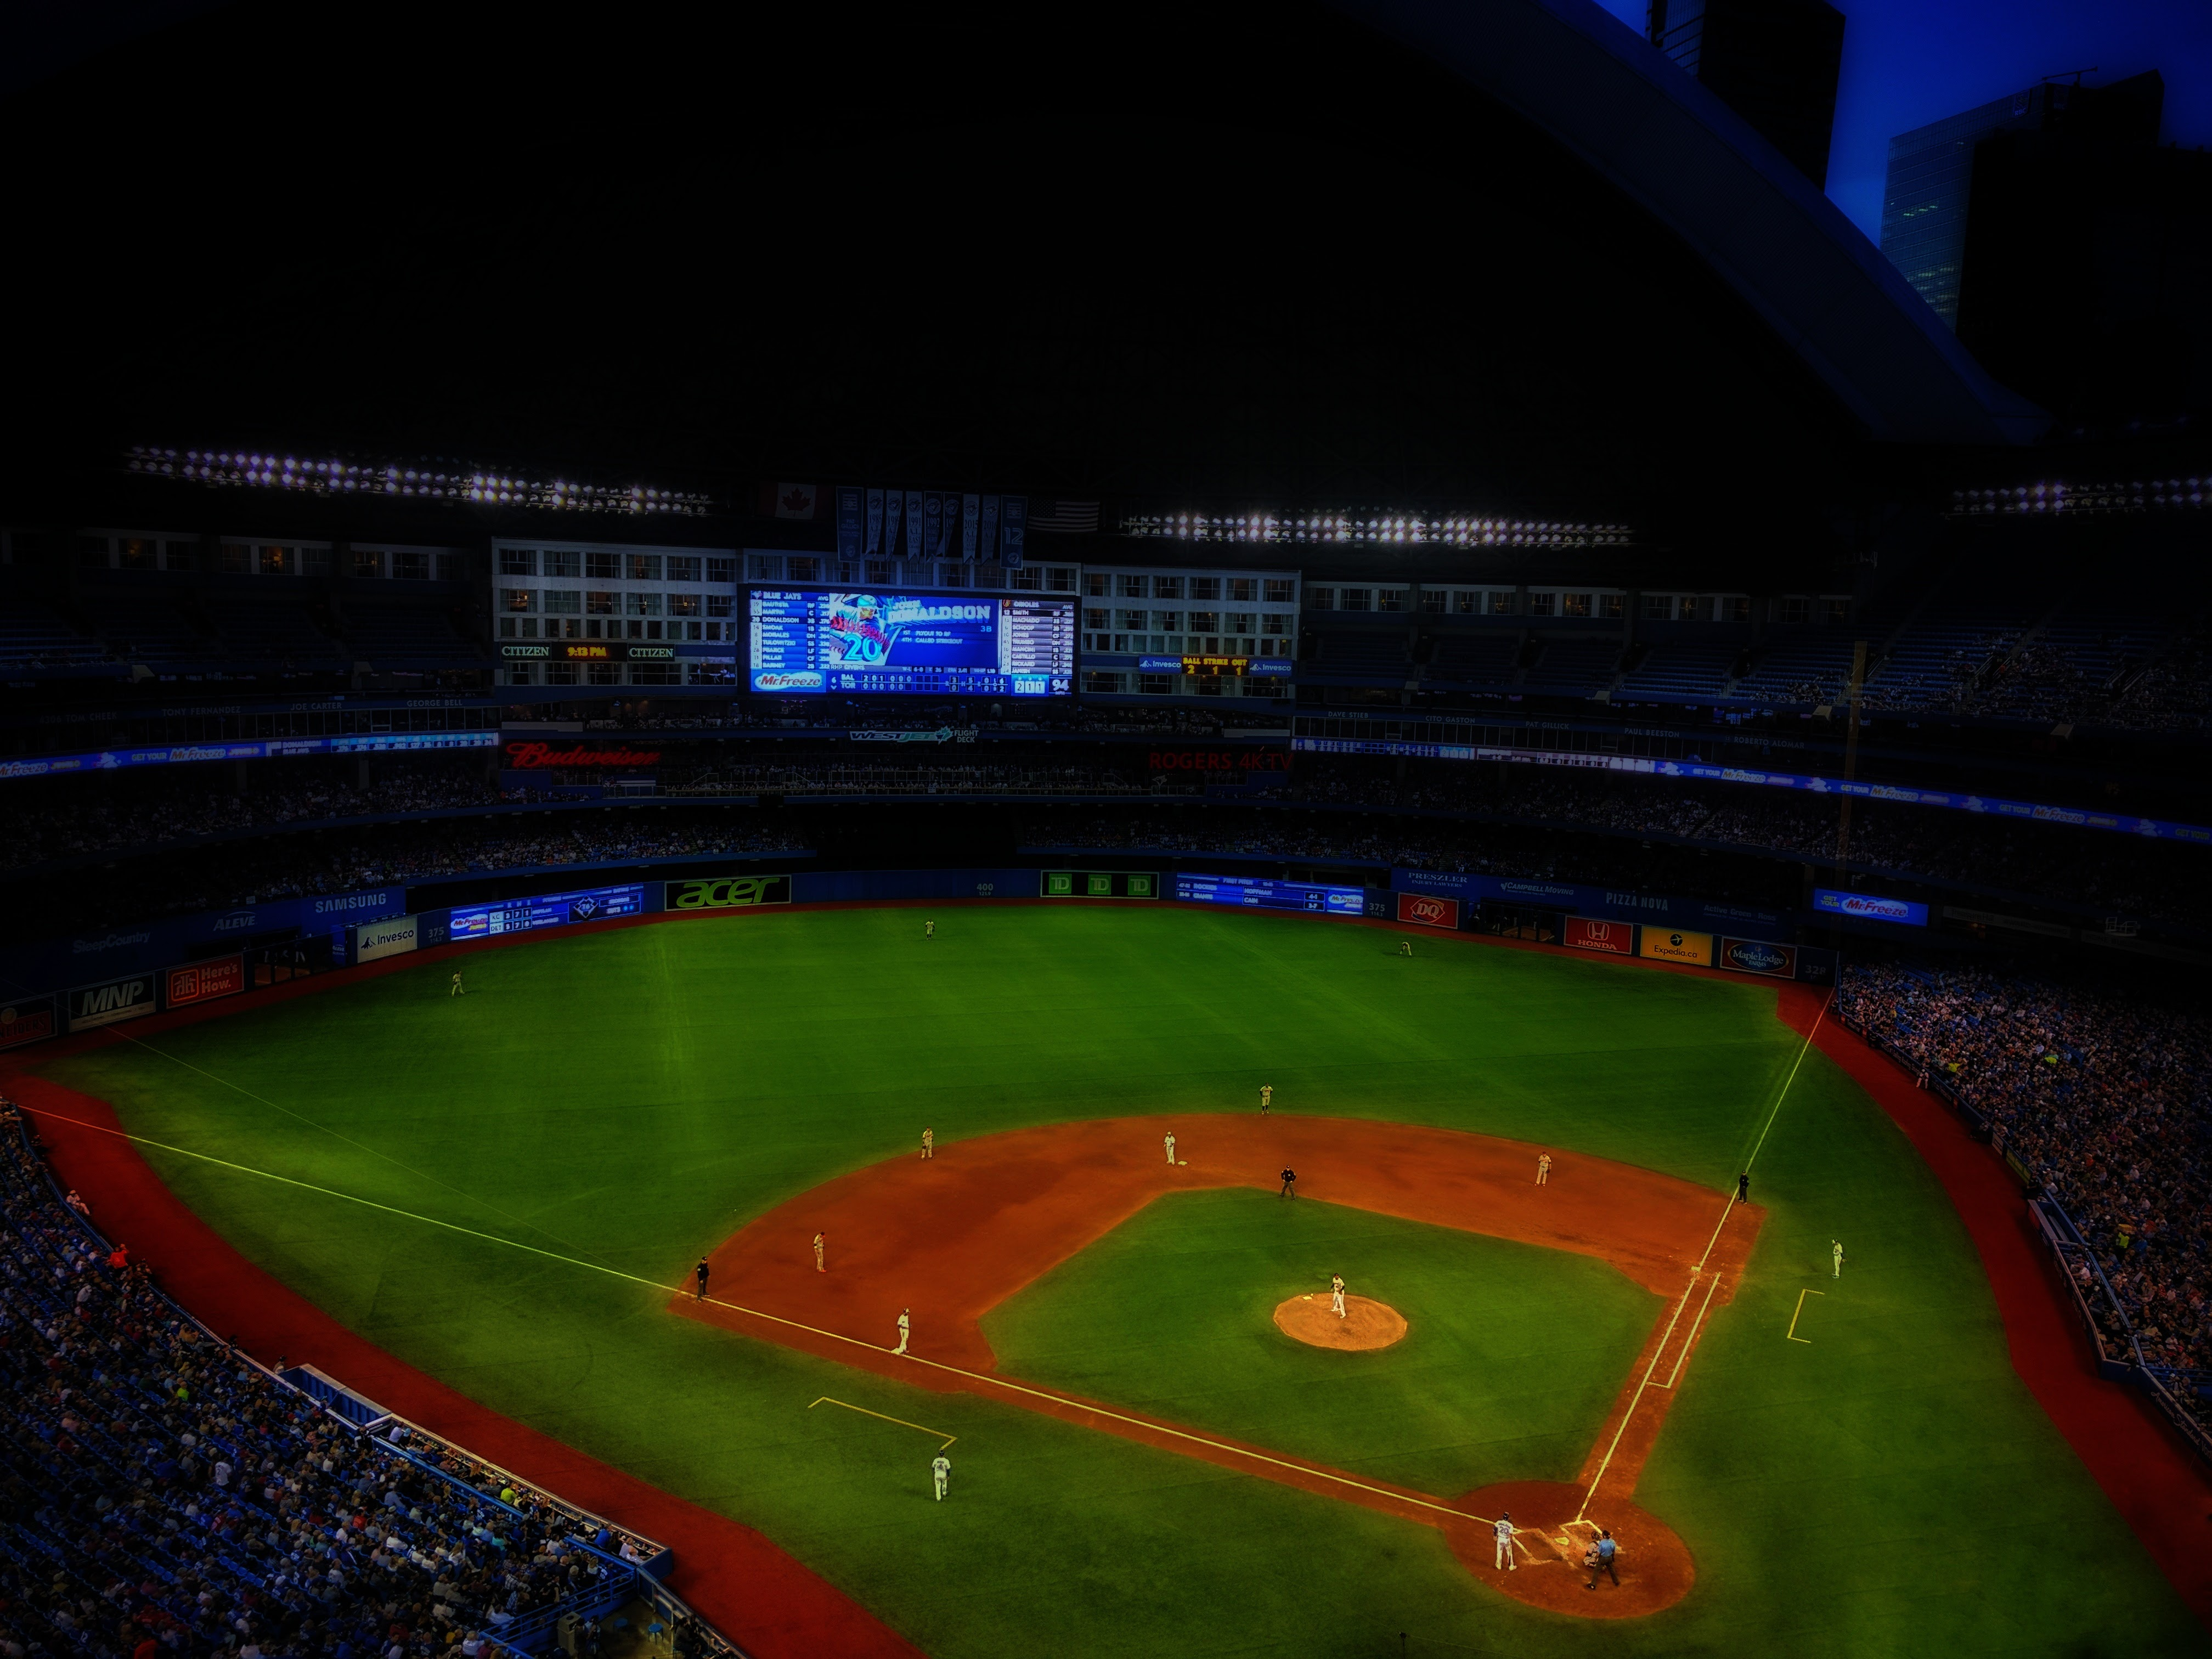 The ball game at the Rogers Center